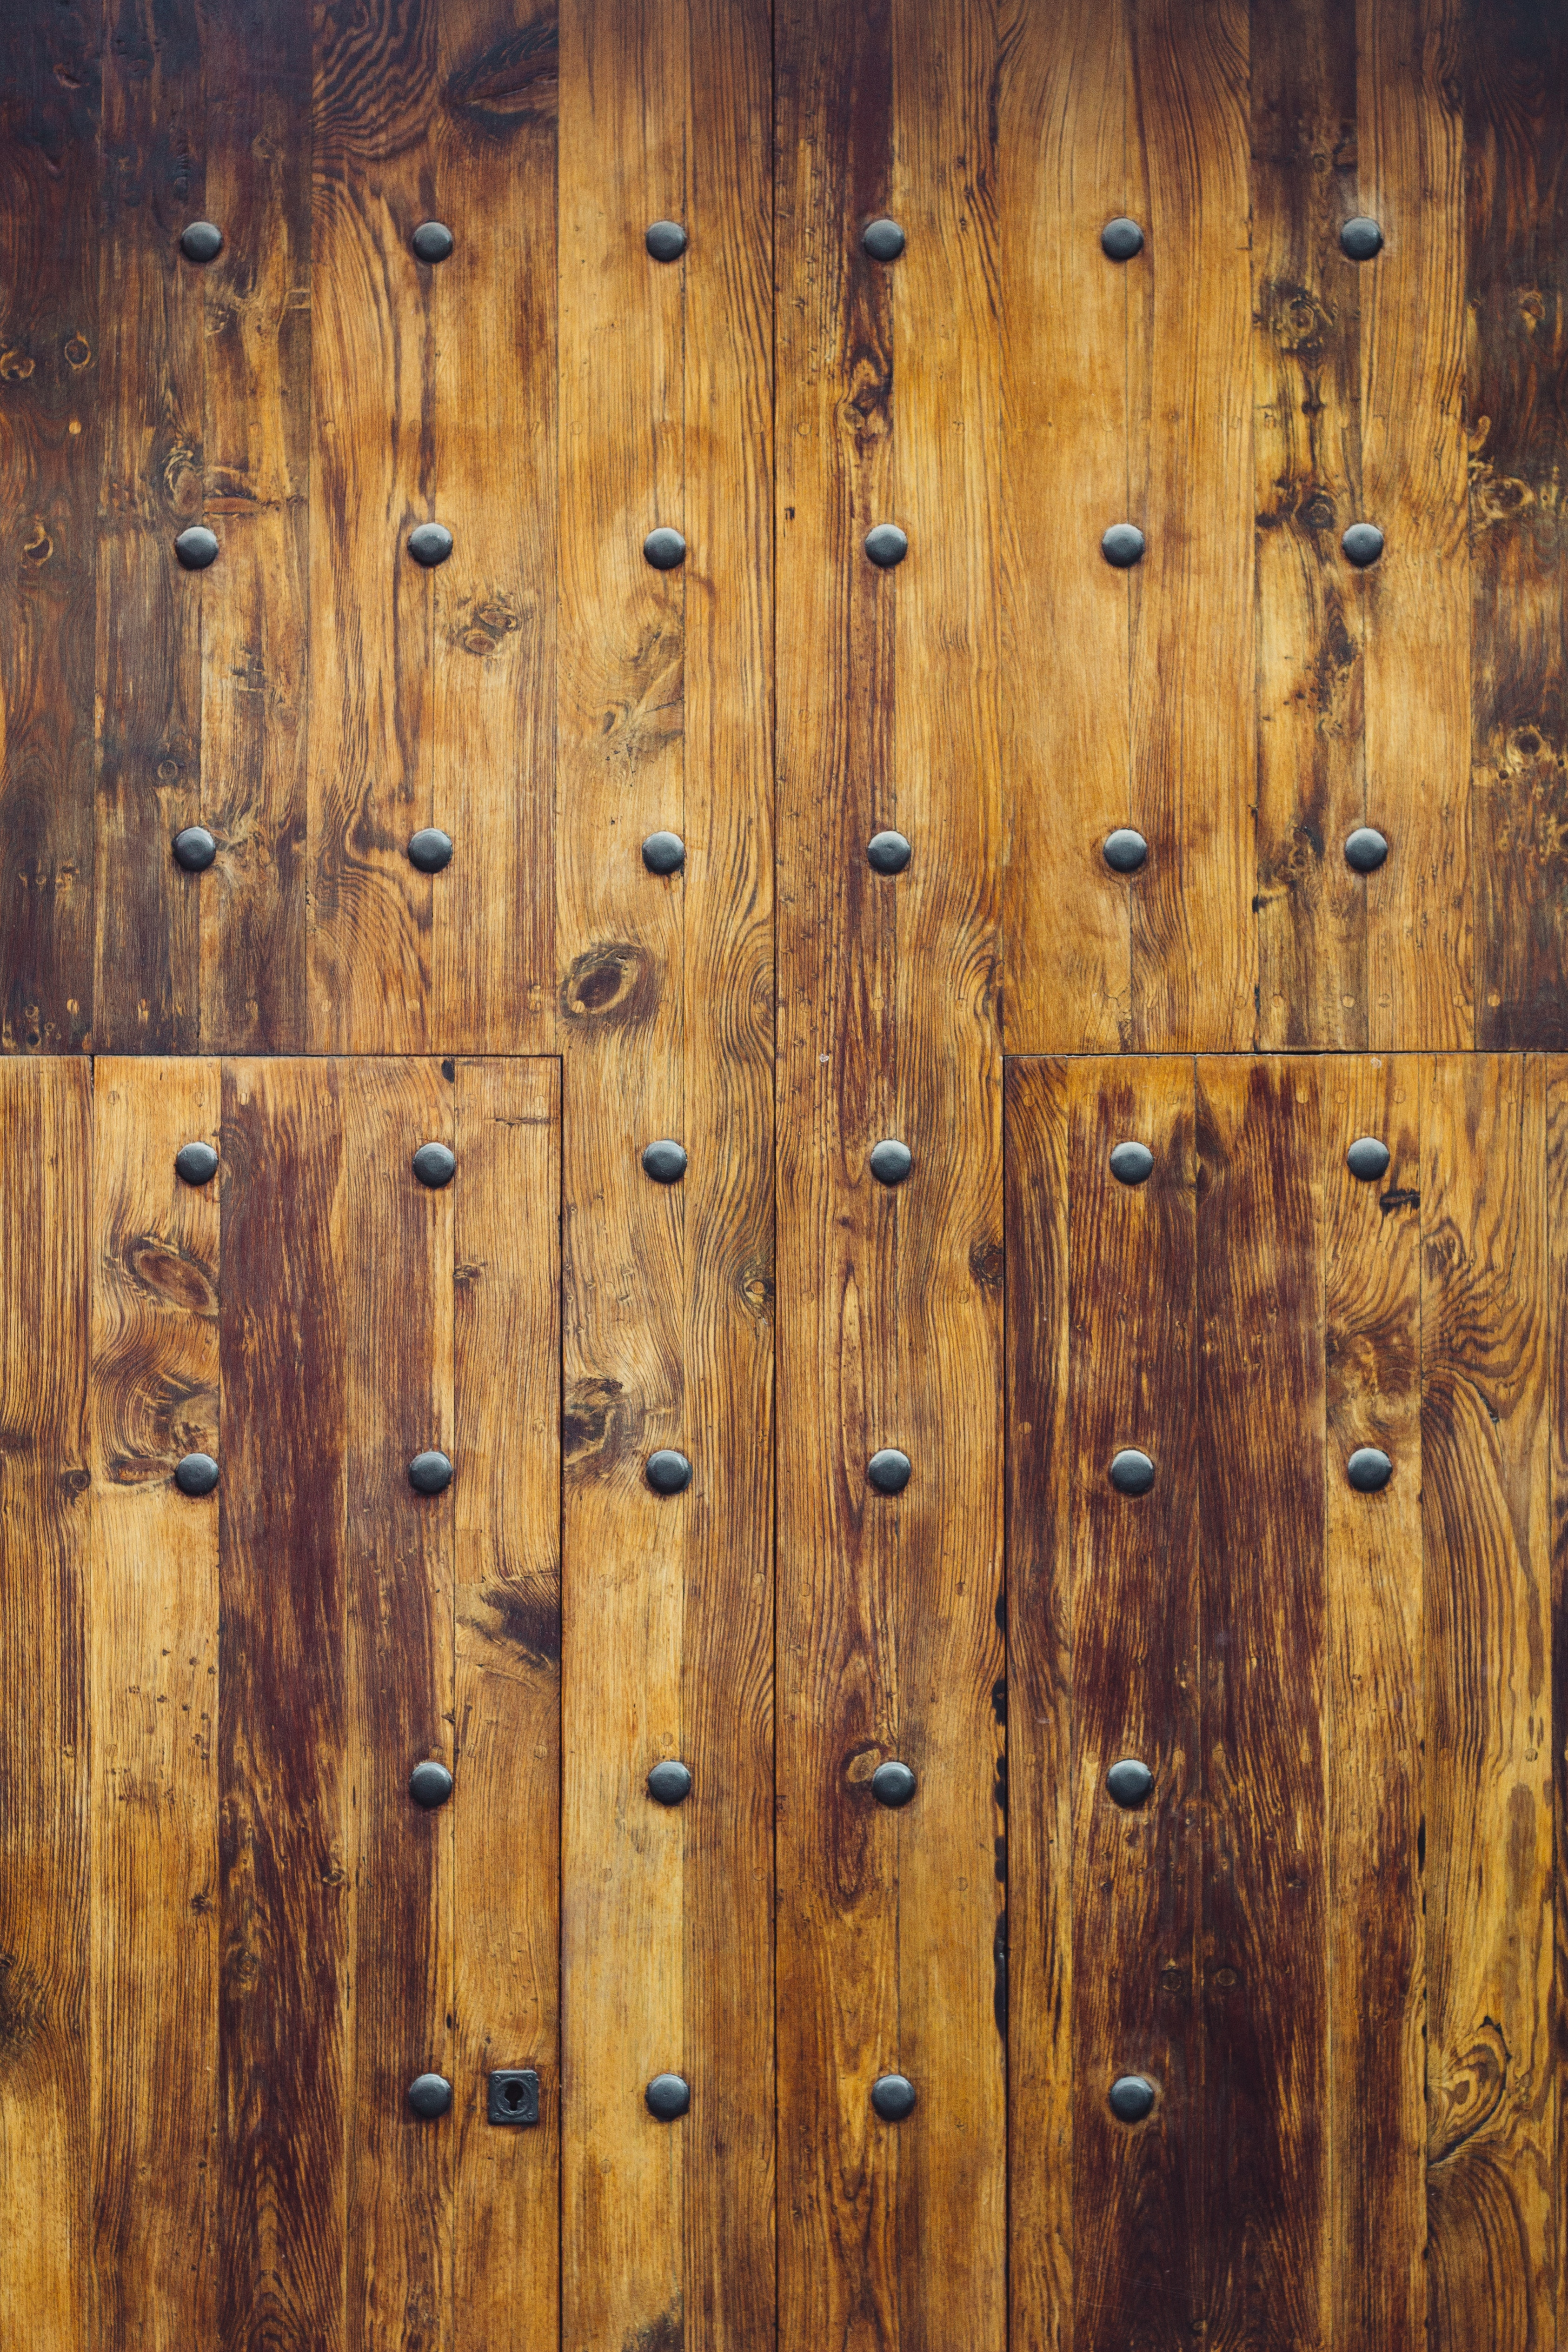 122989 download wallpaper Textures, Texture, Planks, Board, Wall, Wood, Wooden, Nails, Dowel-Nails, Dubel Nails screensavers and pictures for free